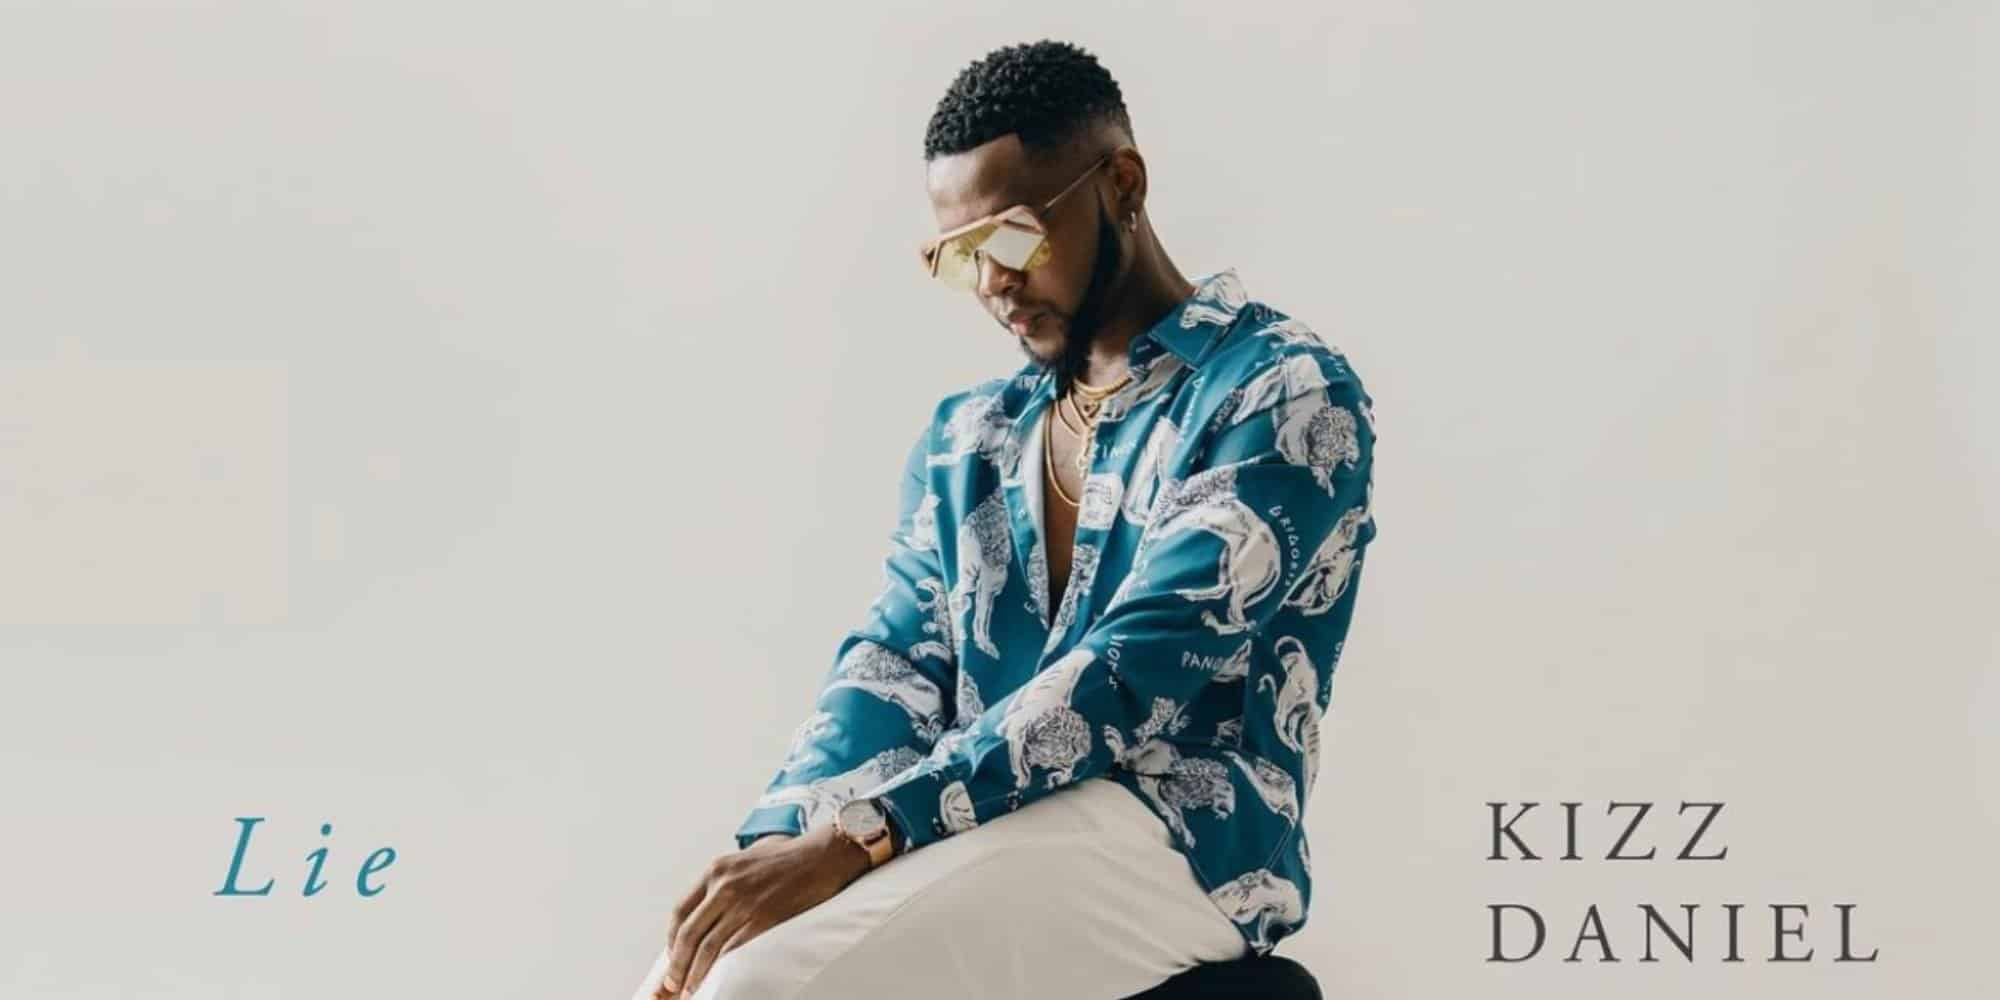 """Turntable Top 50: Kizz Daniel holds steady at No.1with """"Lie"""""""